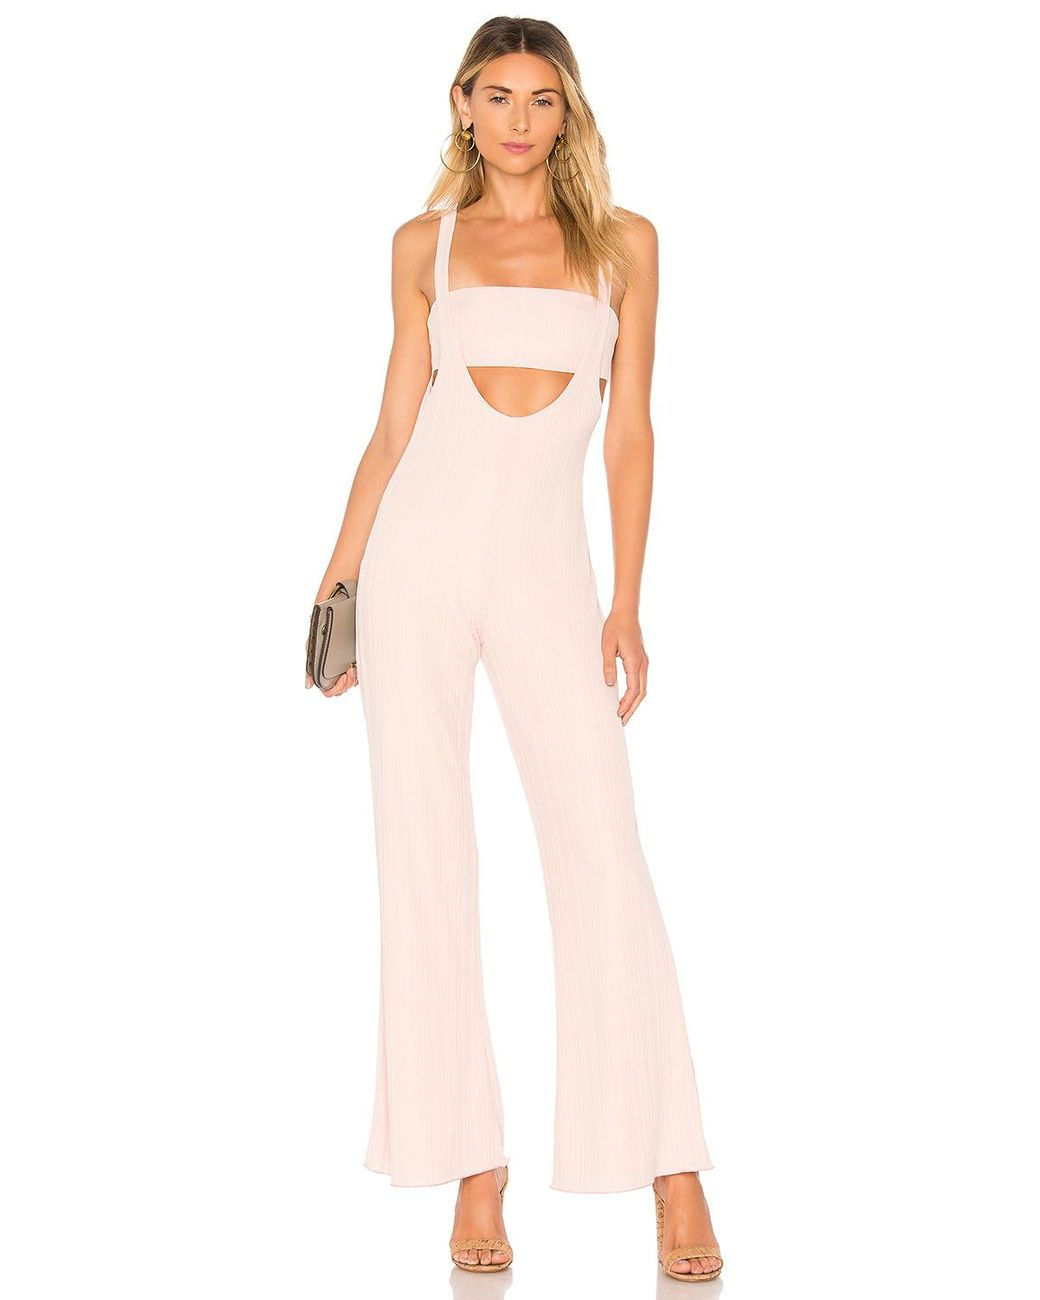 d2a36db3d10 House of Harlow 1960 X Revolve Morin Jumpsuit in Pink - Lyst